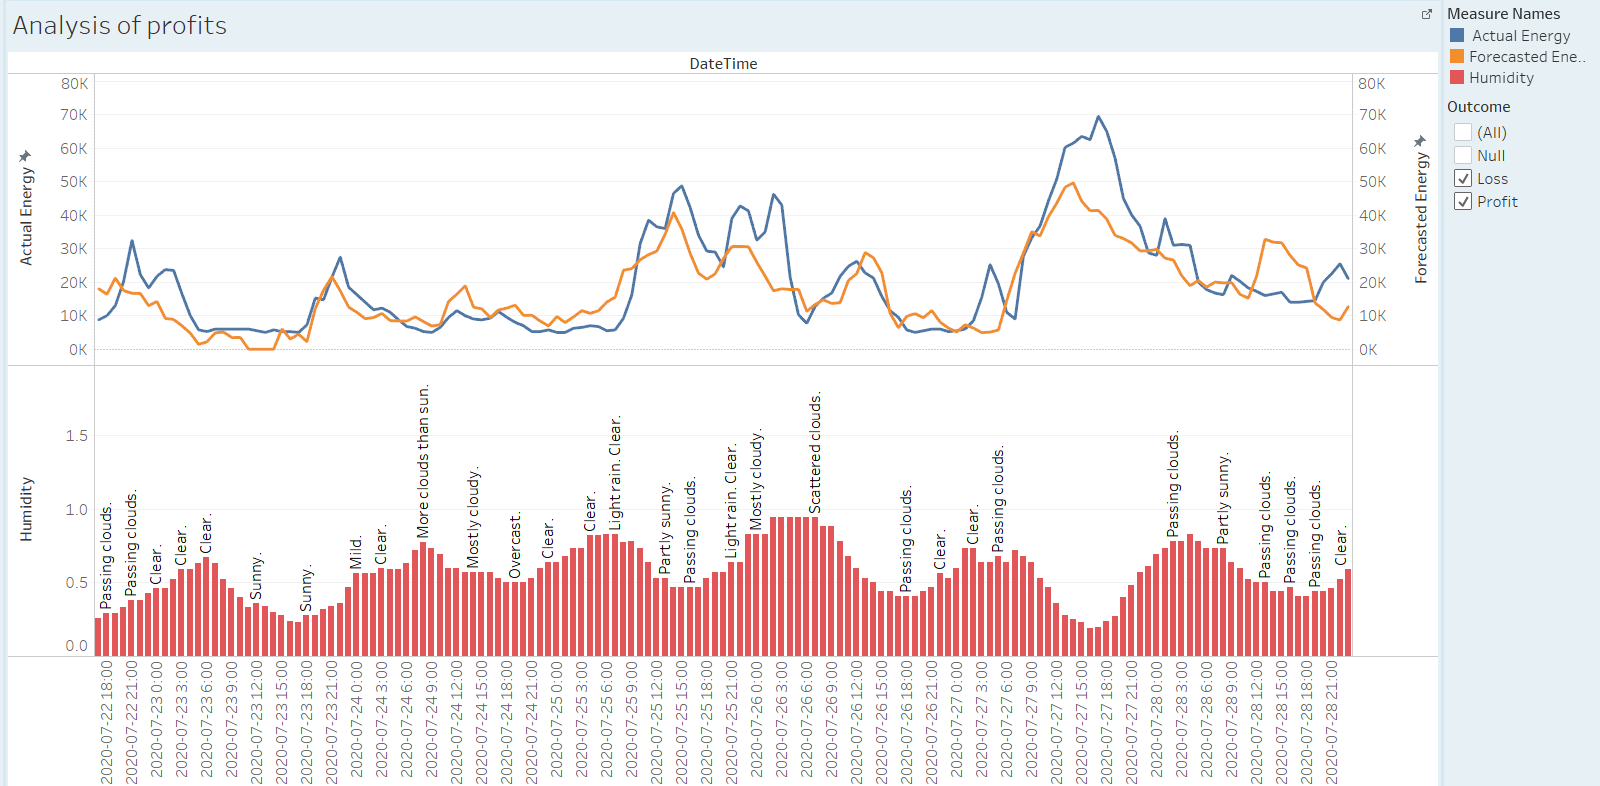 Figure U: Time Series of Actual and Forecasted energy vs the Humidity and Weather